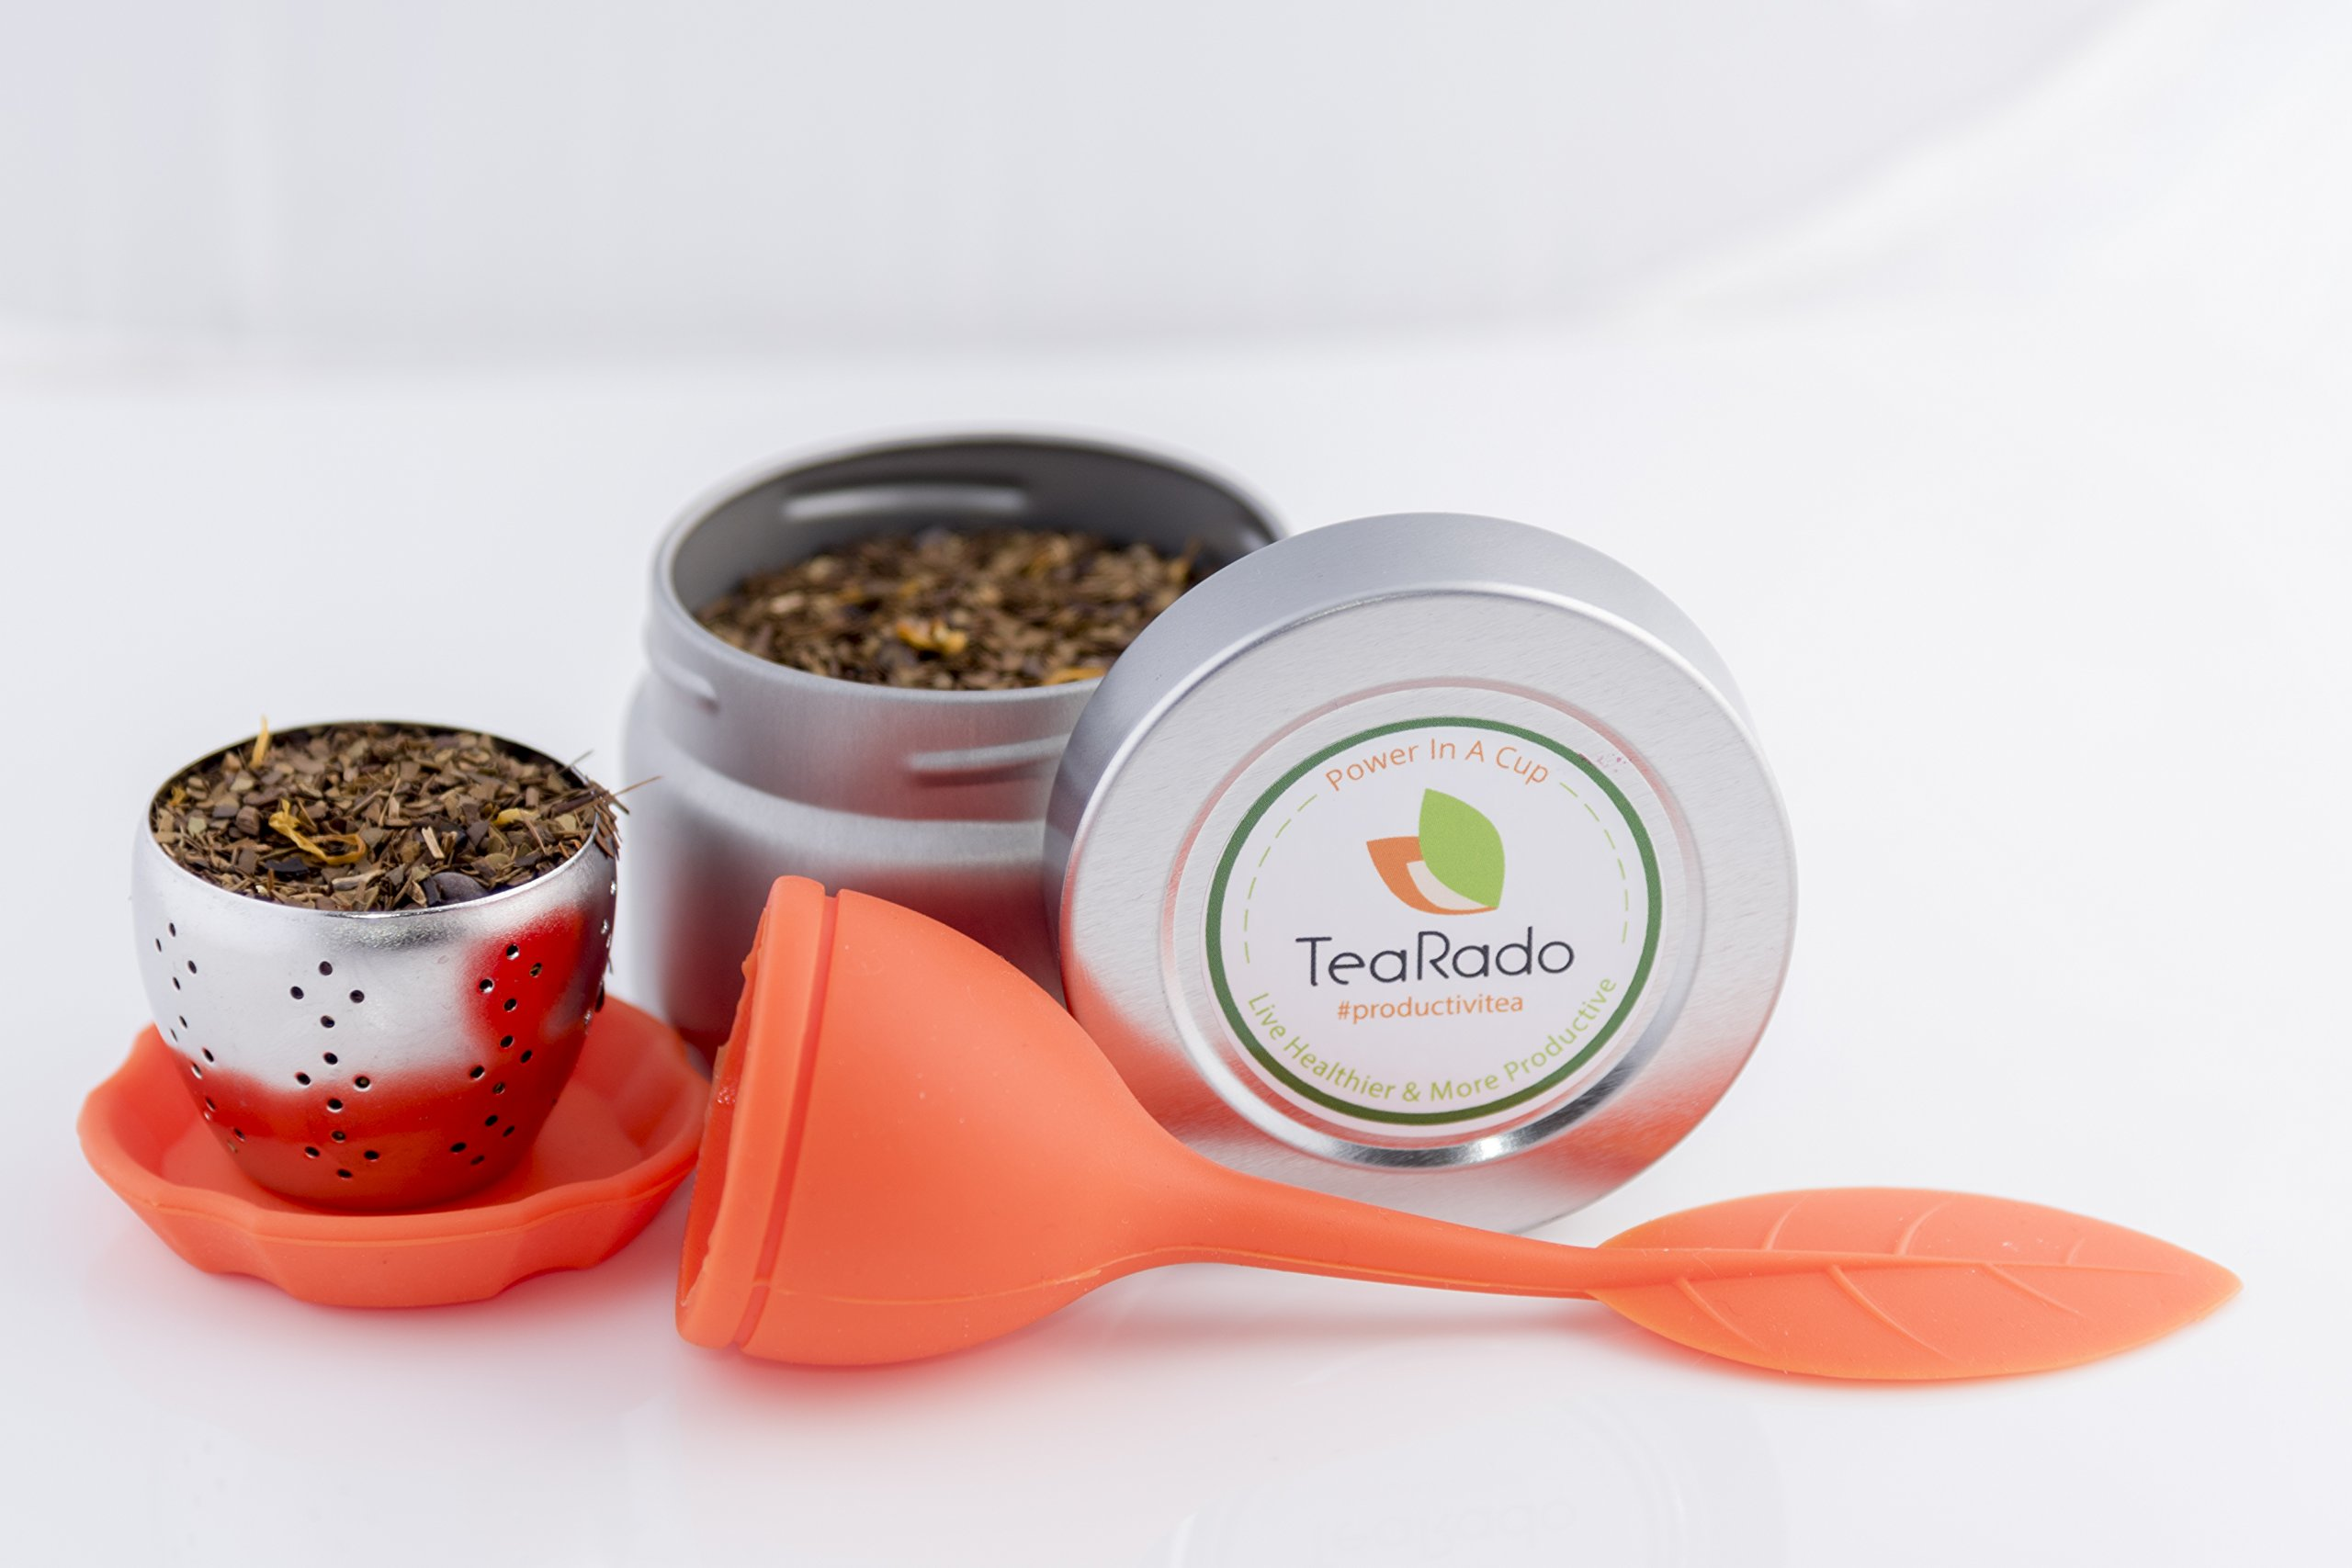 Loose Leaf Tea Travel Set | Organically Sourced Brazilian Yerba Mate | Stainless Steel Infuser & Drip Pad | Packaged in Reusable Airtight Tins, Carry Anywhere and Brew (Brazilian Mate, Orange)